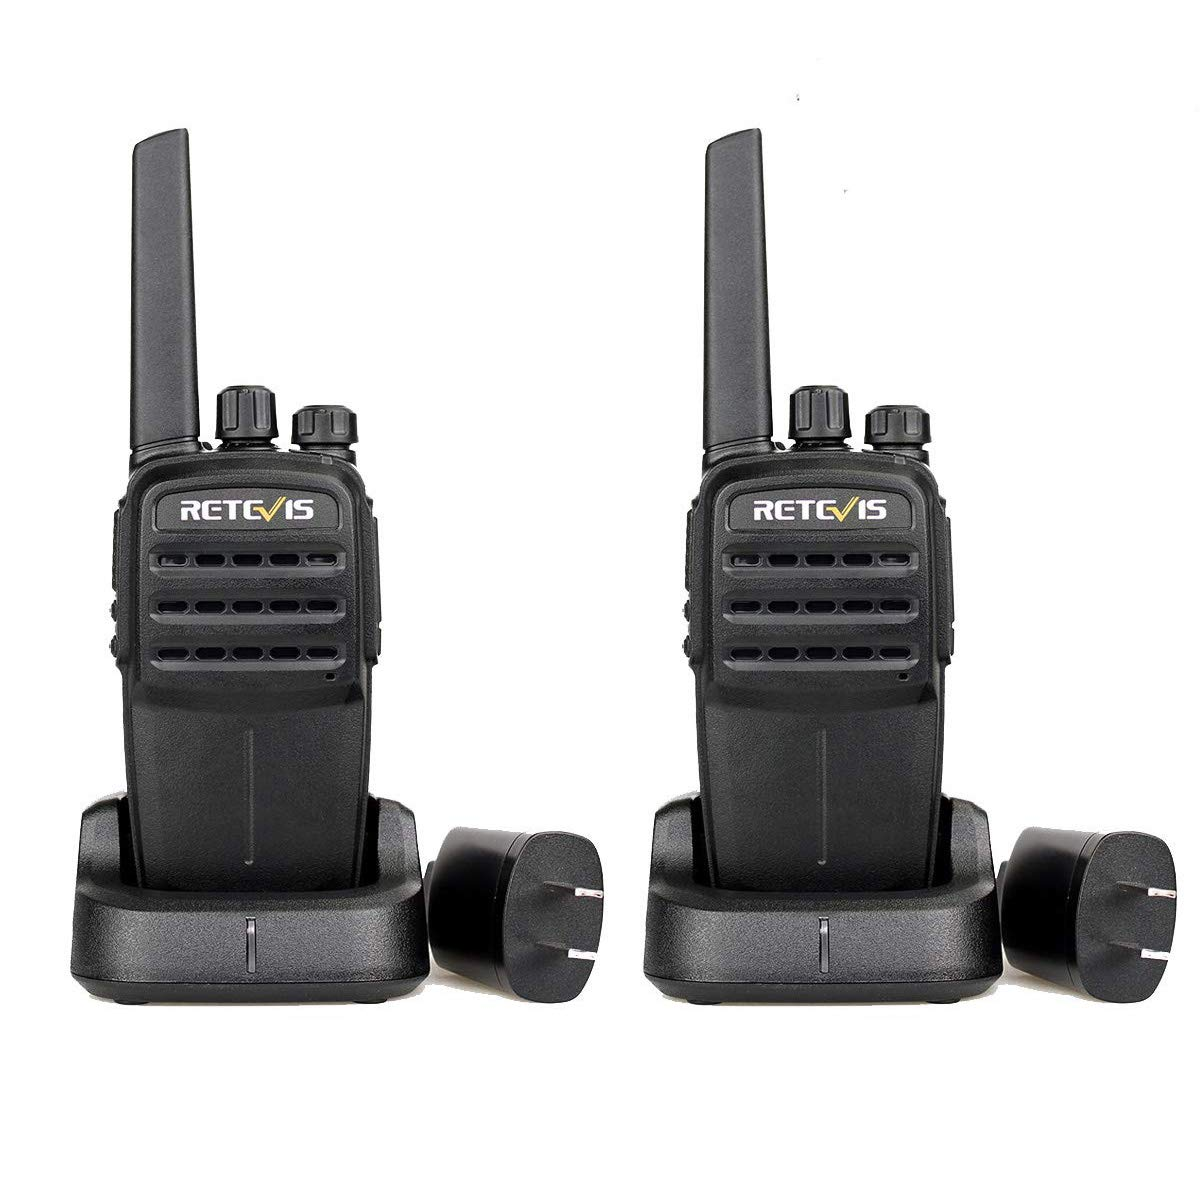 1 Pair FA9128AX2-J0013A Retevis RT40 Walkie Talkies 48 Channel Two-Way Radio Digital Analog Group Call 1700mAh Li-on Rechargeable Battery with USB Charger